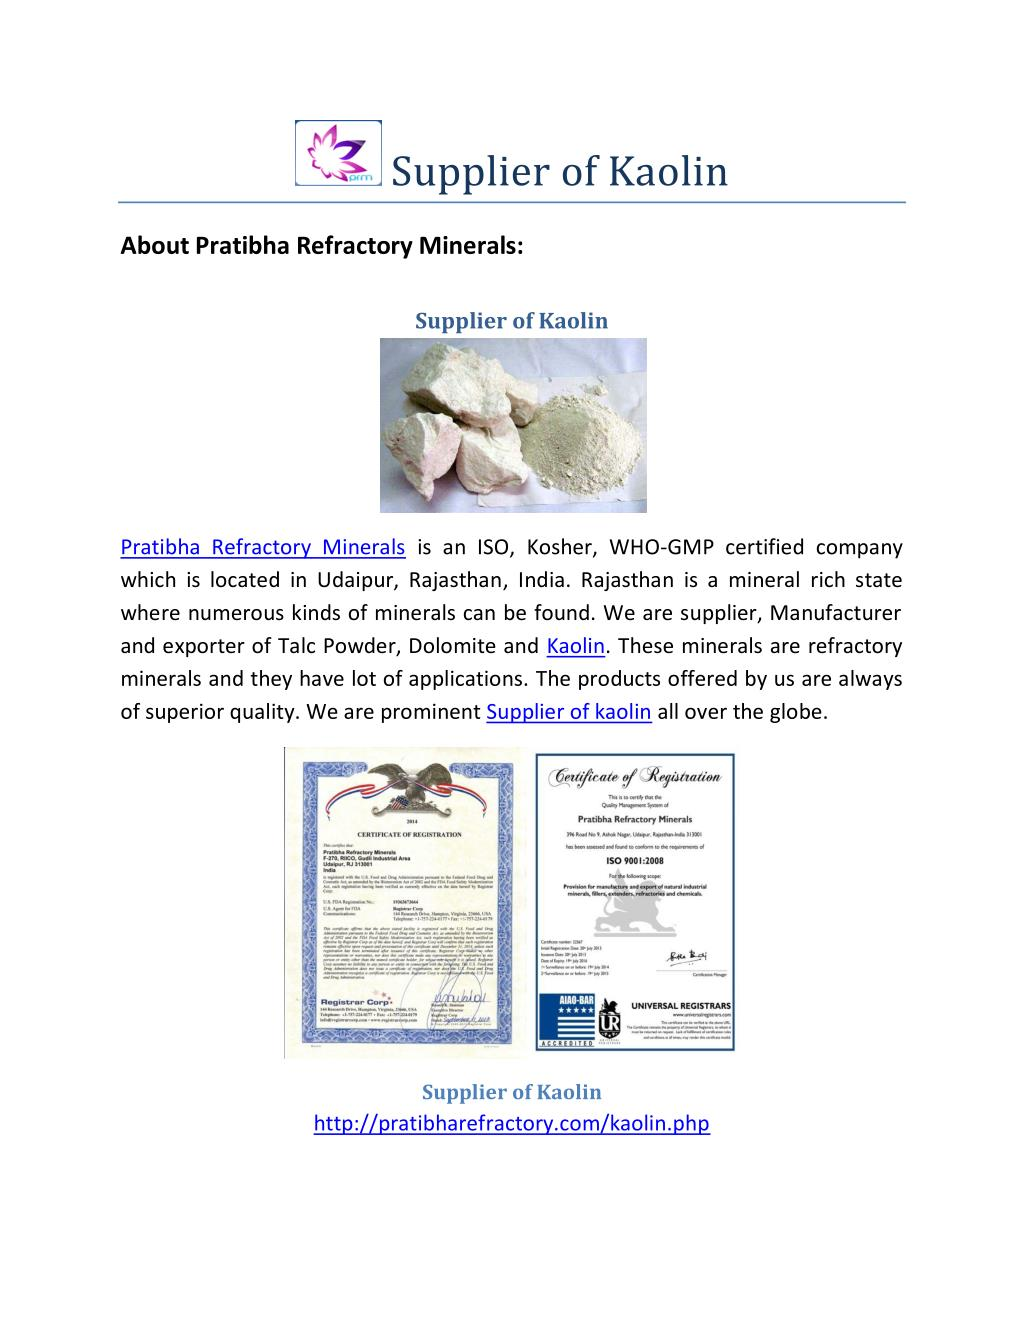 PPT - Supplier of Kaolin-Best Price PowerPoint Presentation - ID:7577277